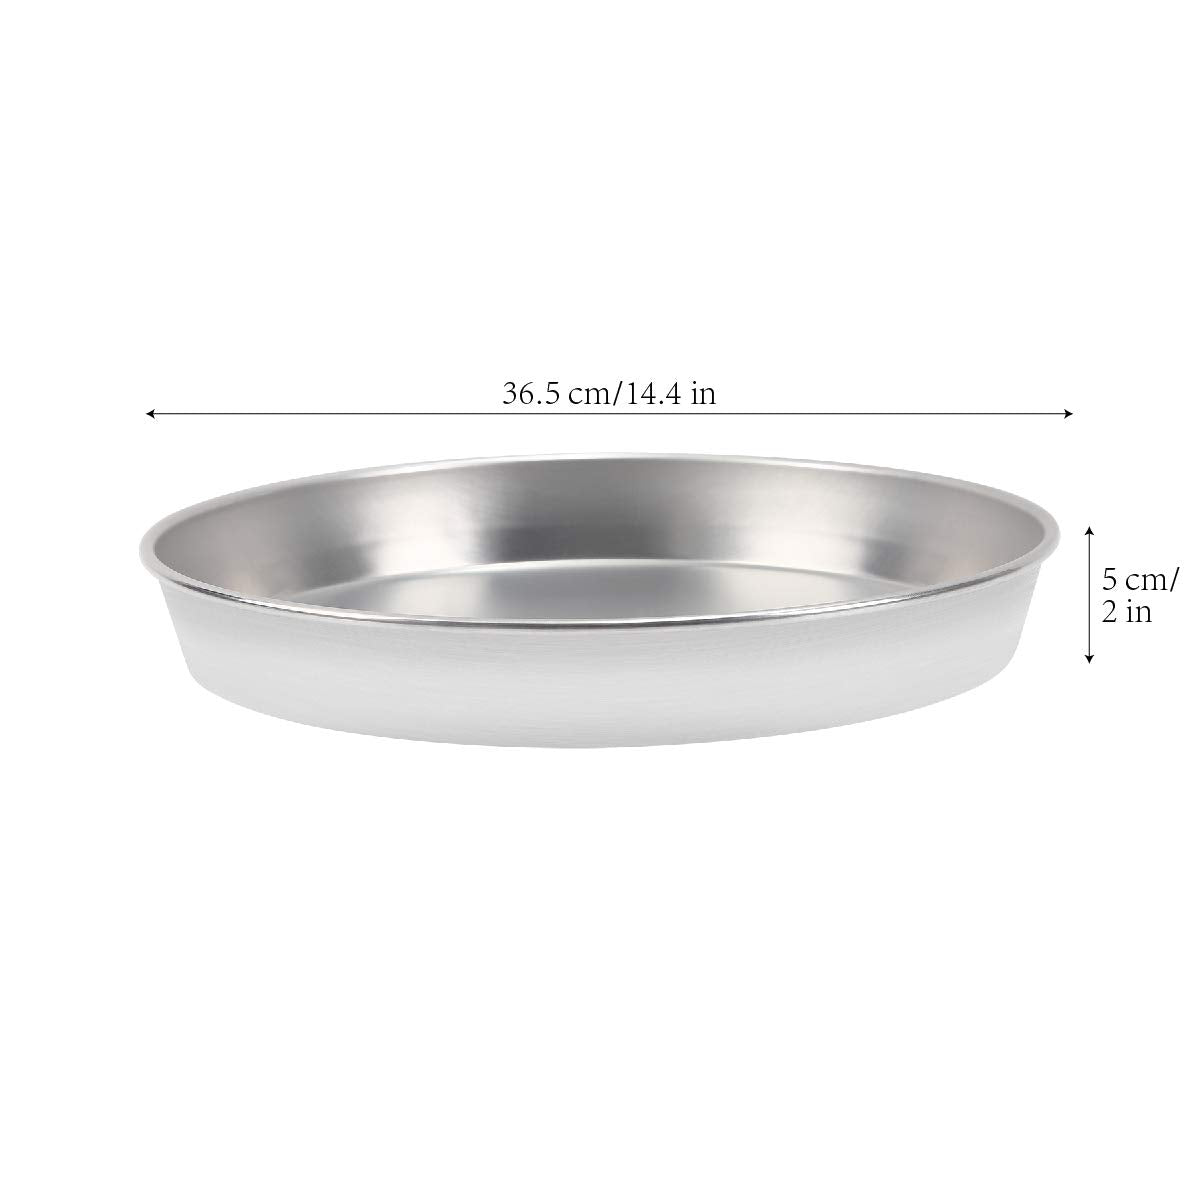 Tapered Cake Pans NSF certified, 12 pack